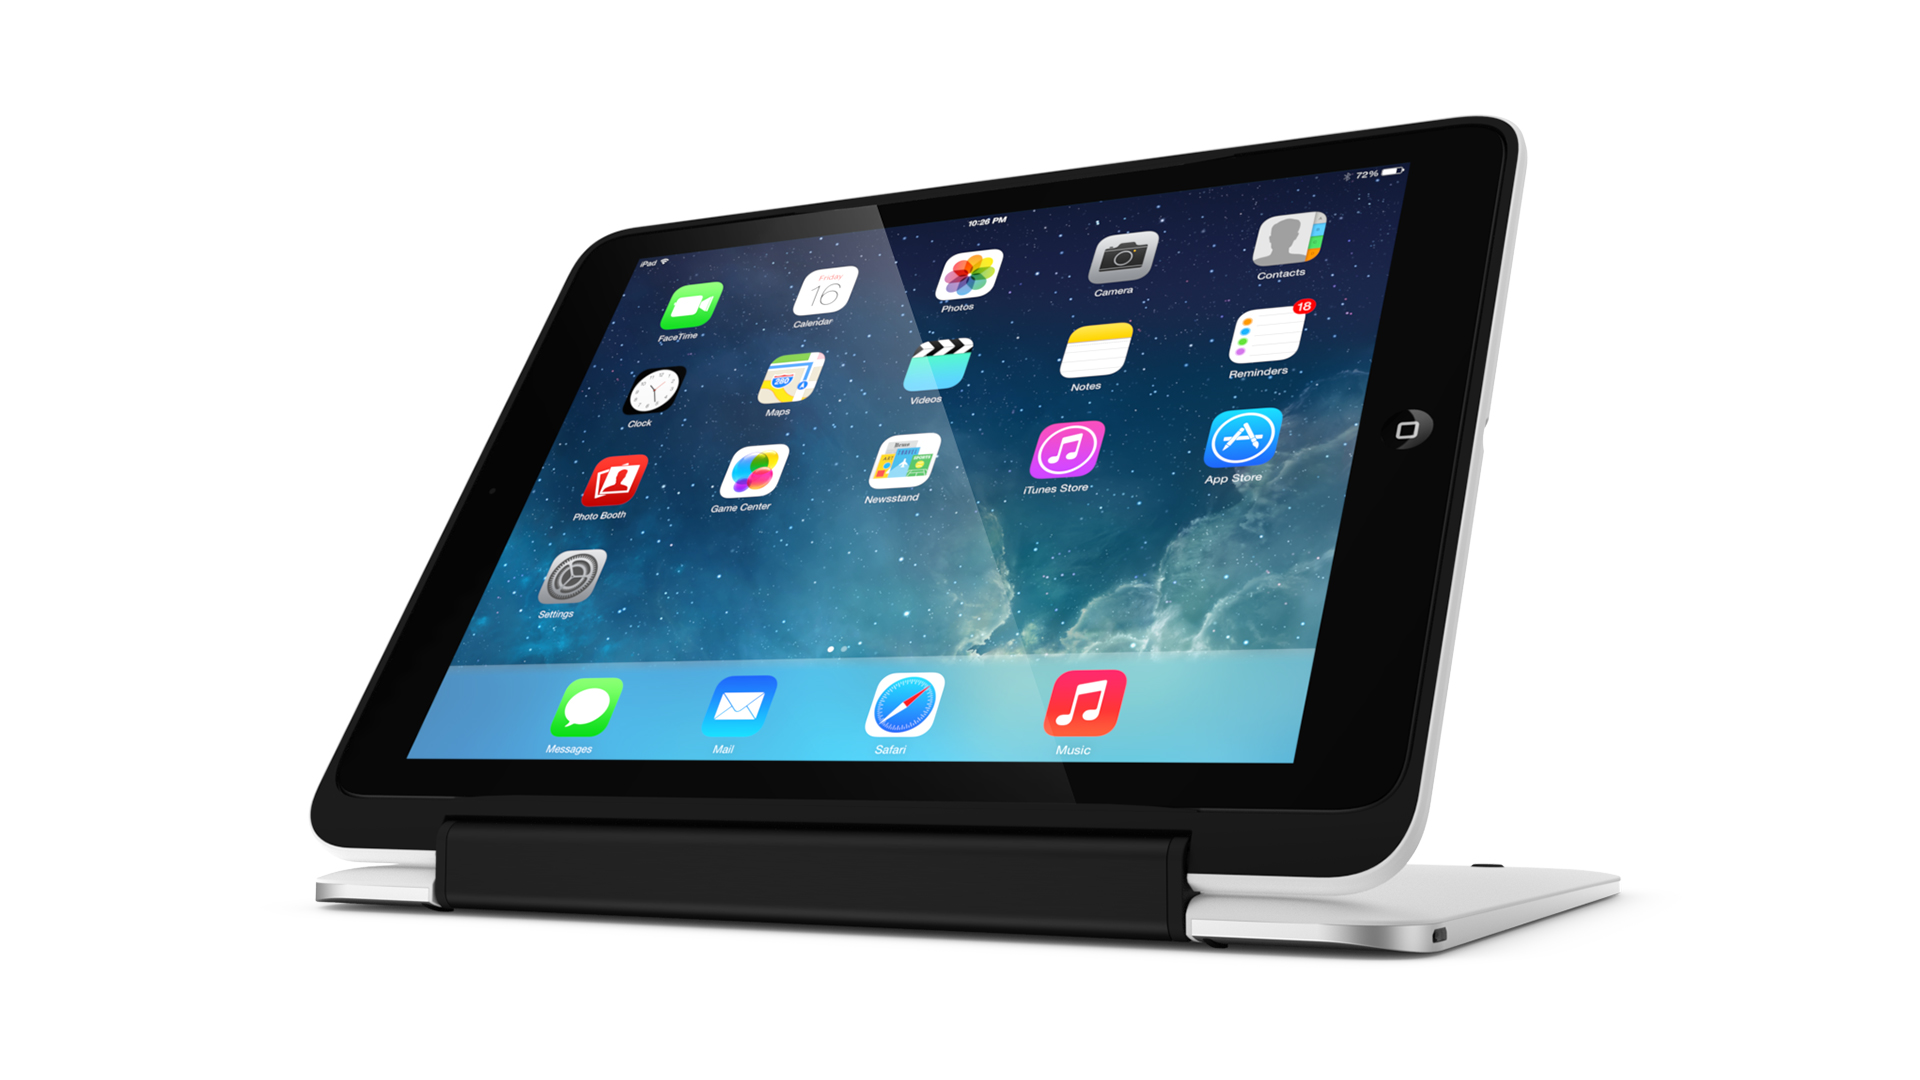 Tech Reviewer – The iPad Air: What I Like and What I Don't